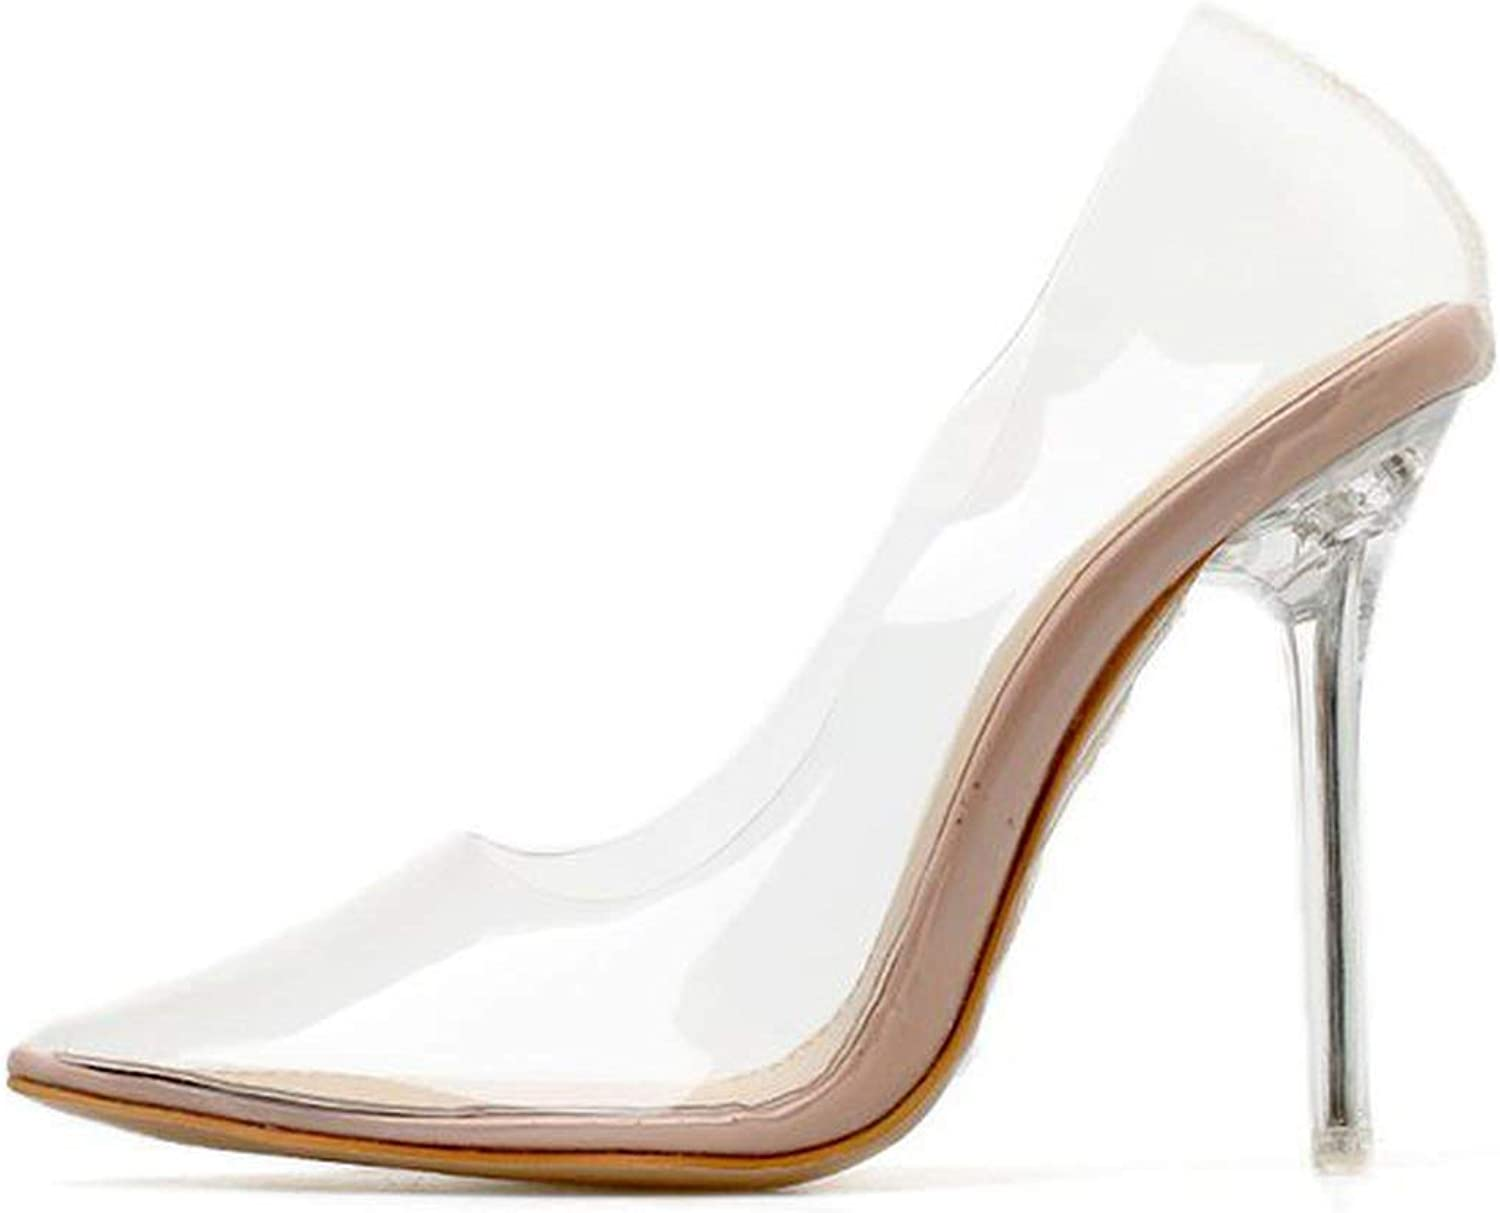 Sonder-Store 11Cm Women's PumpsCrystal Clear Heel Shallow Party Dress Female shoes Nude